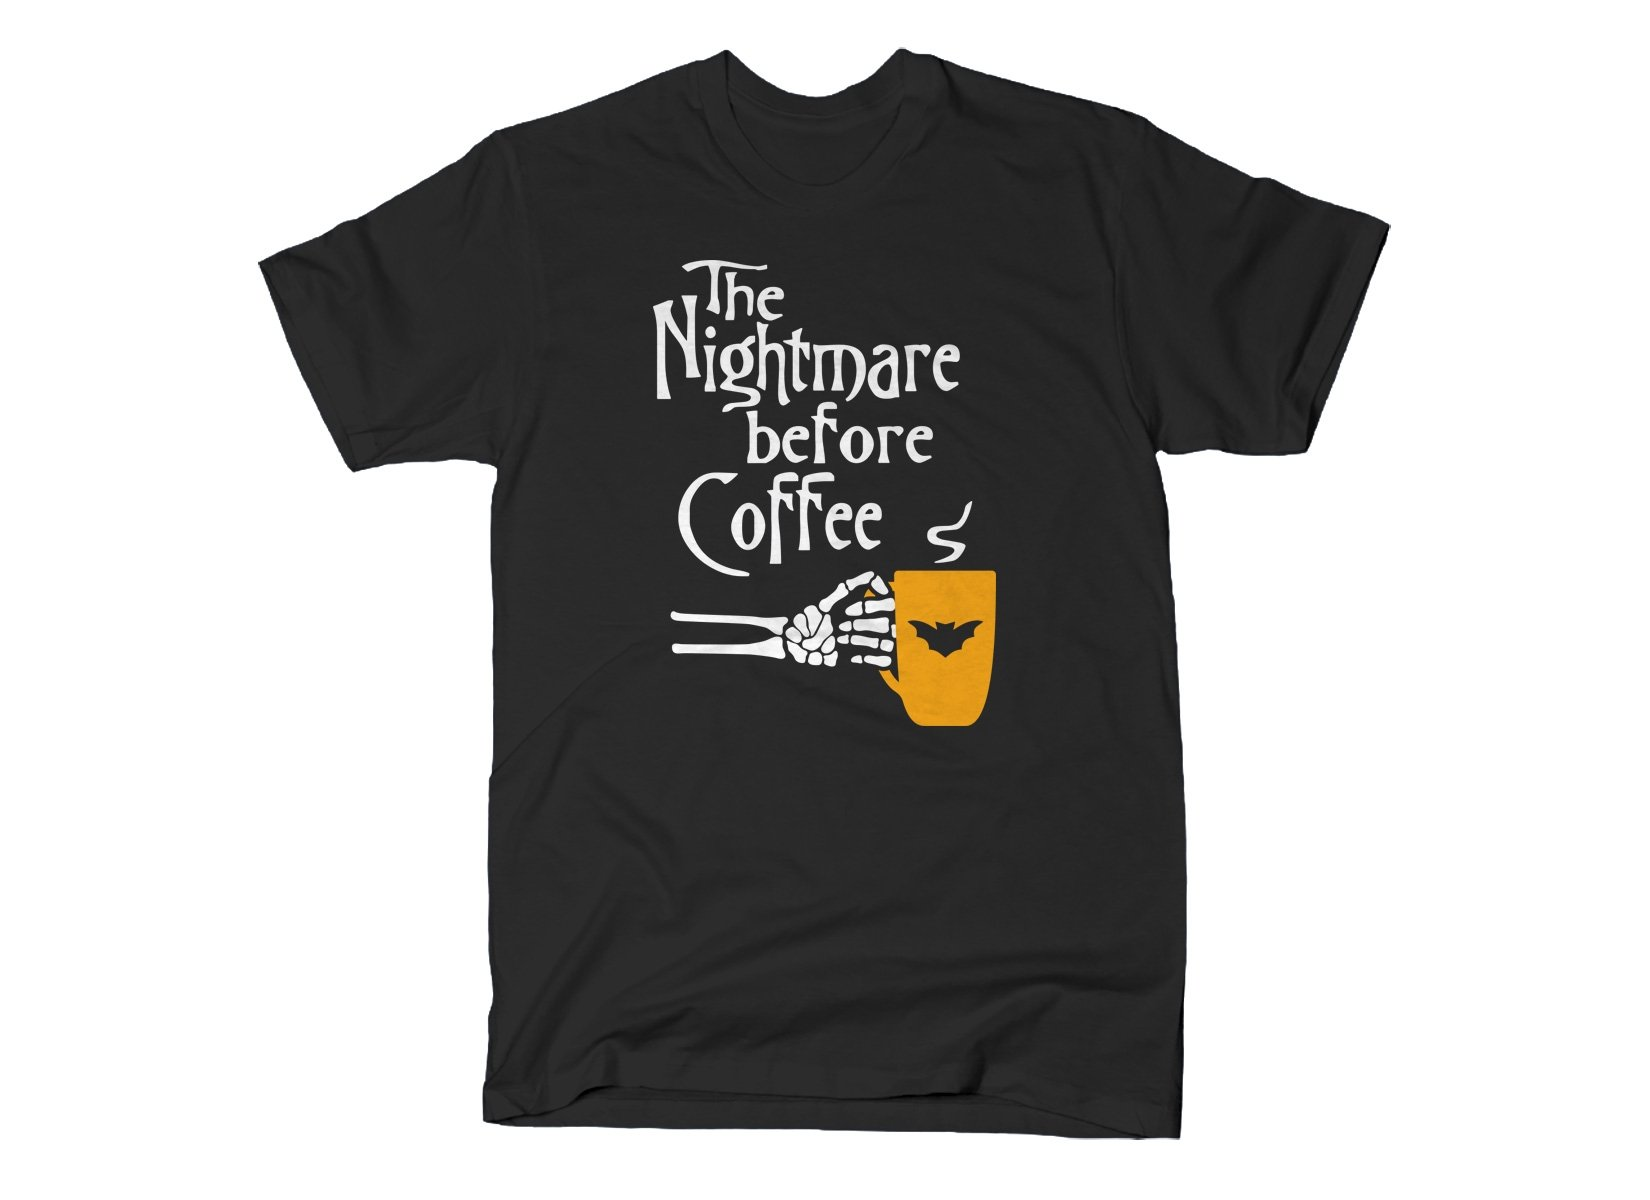 The Nightmare Before Coffee on Mens T-Shirt